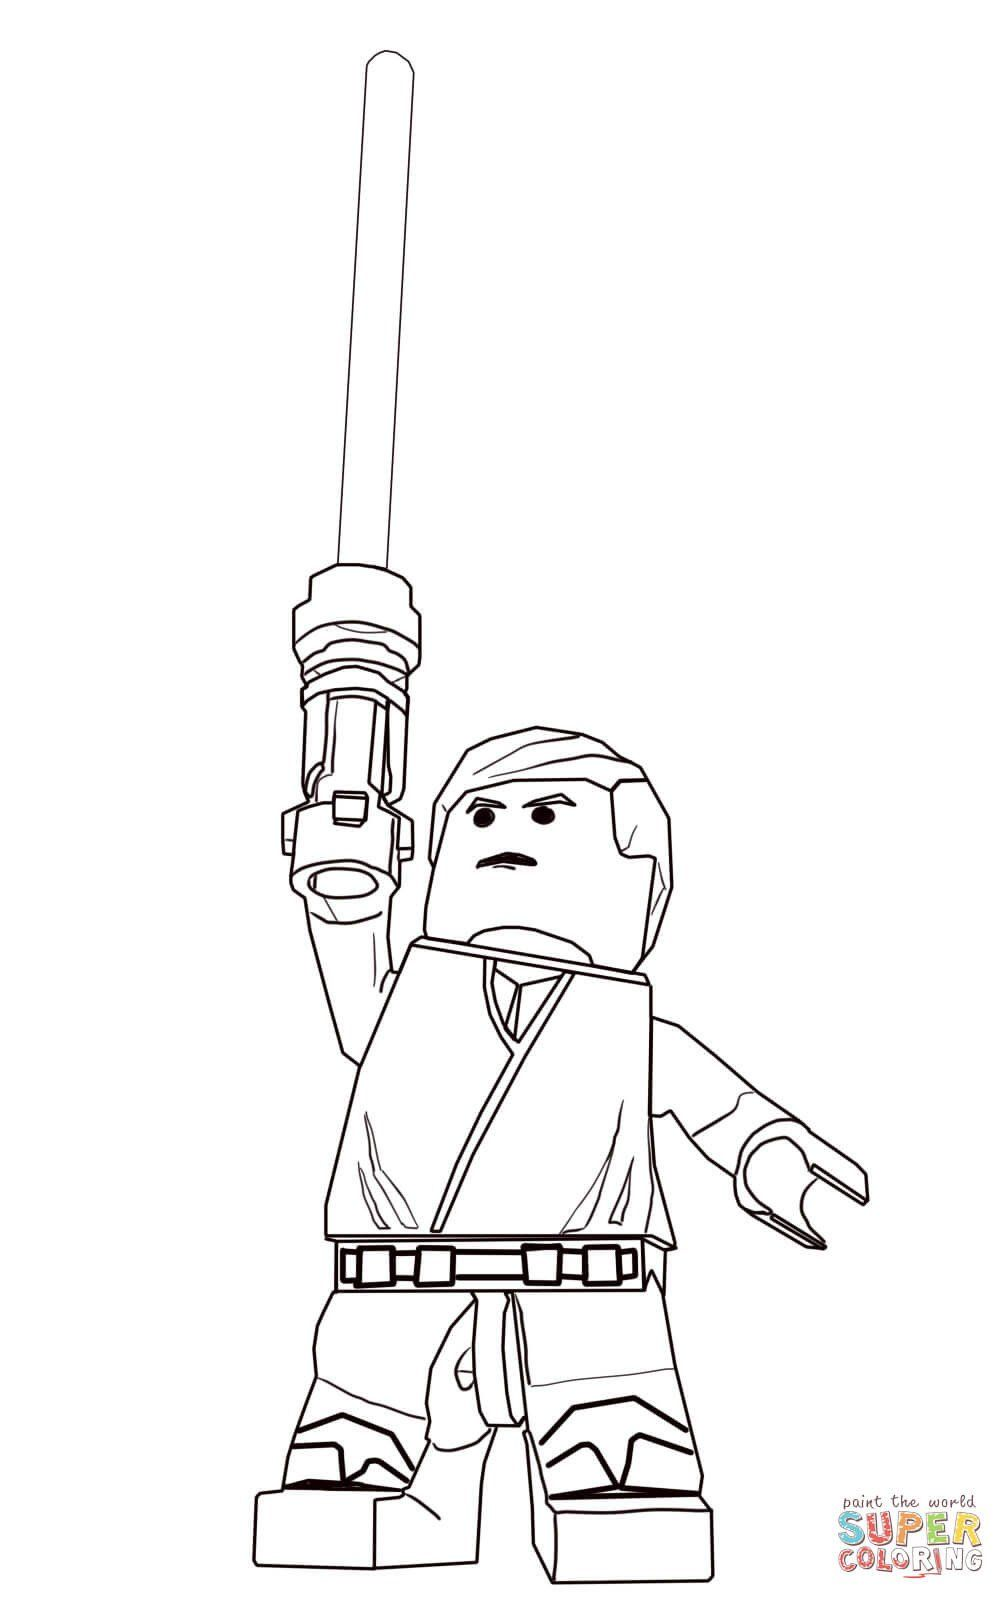 Lego Star Wars Coloring Pages Free Star Wars Lego Free Coloring Pages Download Free Clip In 2020 Star Coloring Pages Coloring Pages Halloween Coloring Pages